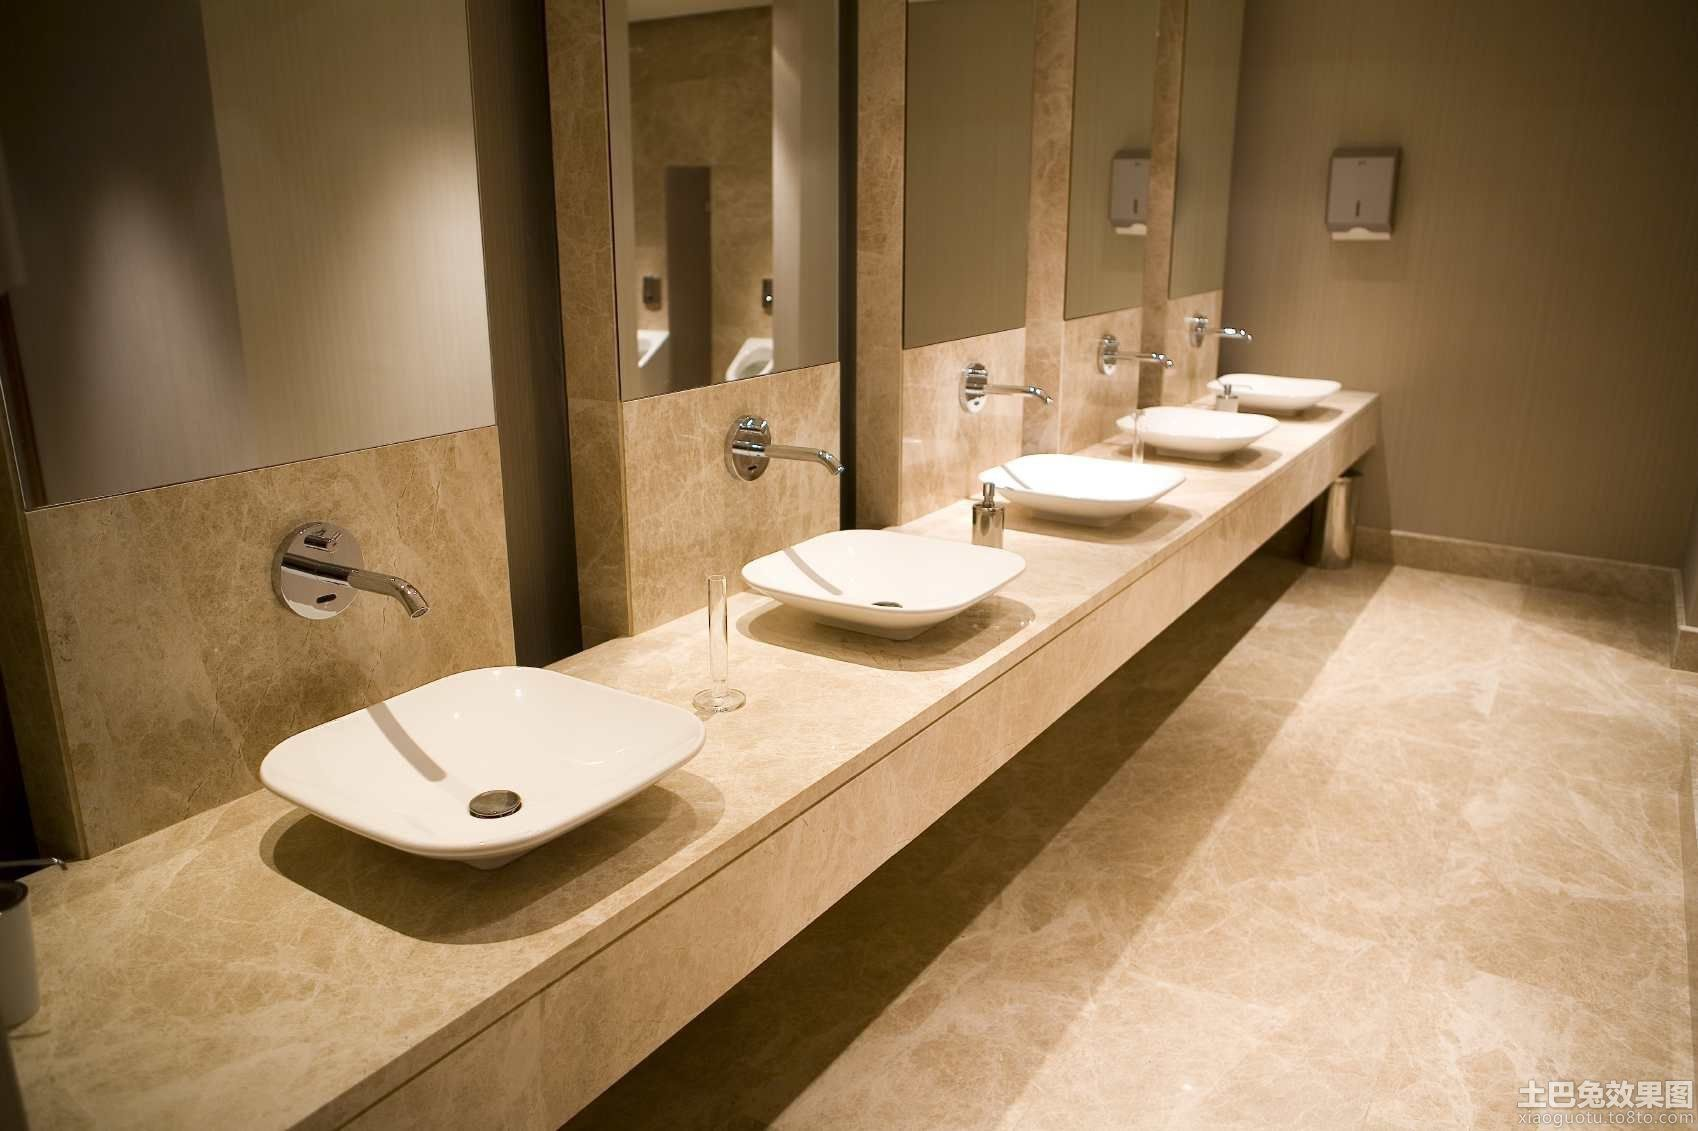 Commercial Restroom Design Commercial Restrooms Locker Rooms